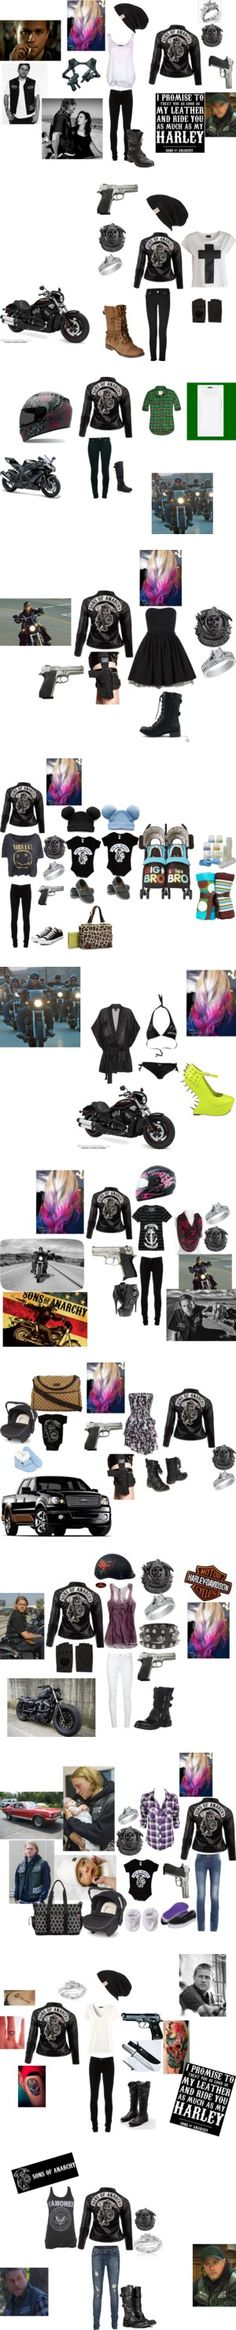 """""""Sons Of Anarchy 3"""" by patricklovesniallandkevin ❤ liked on Polyvore"""